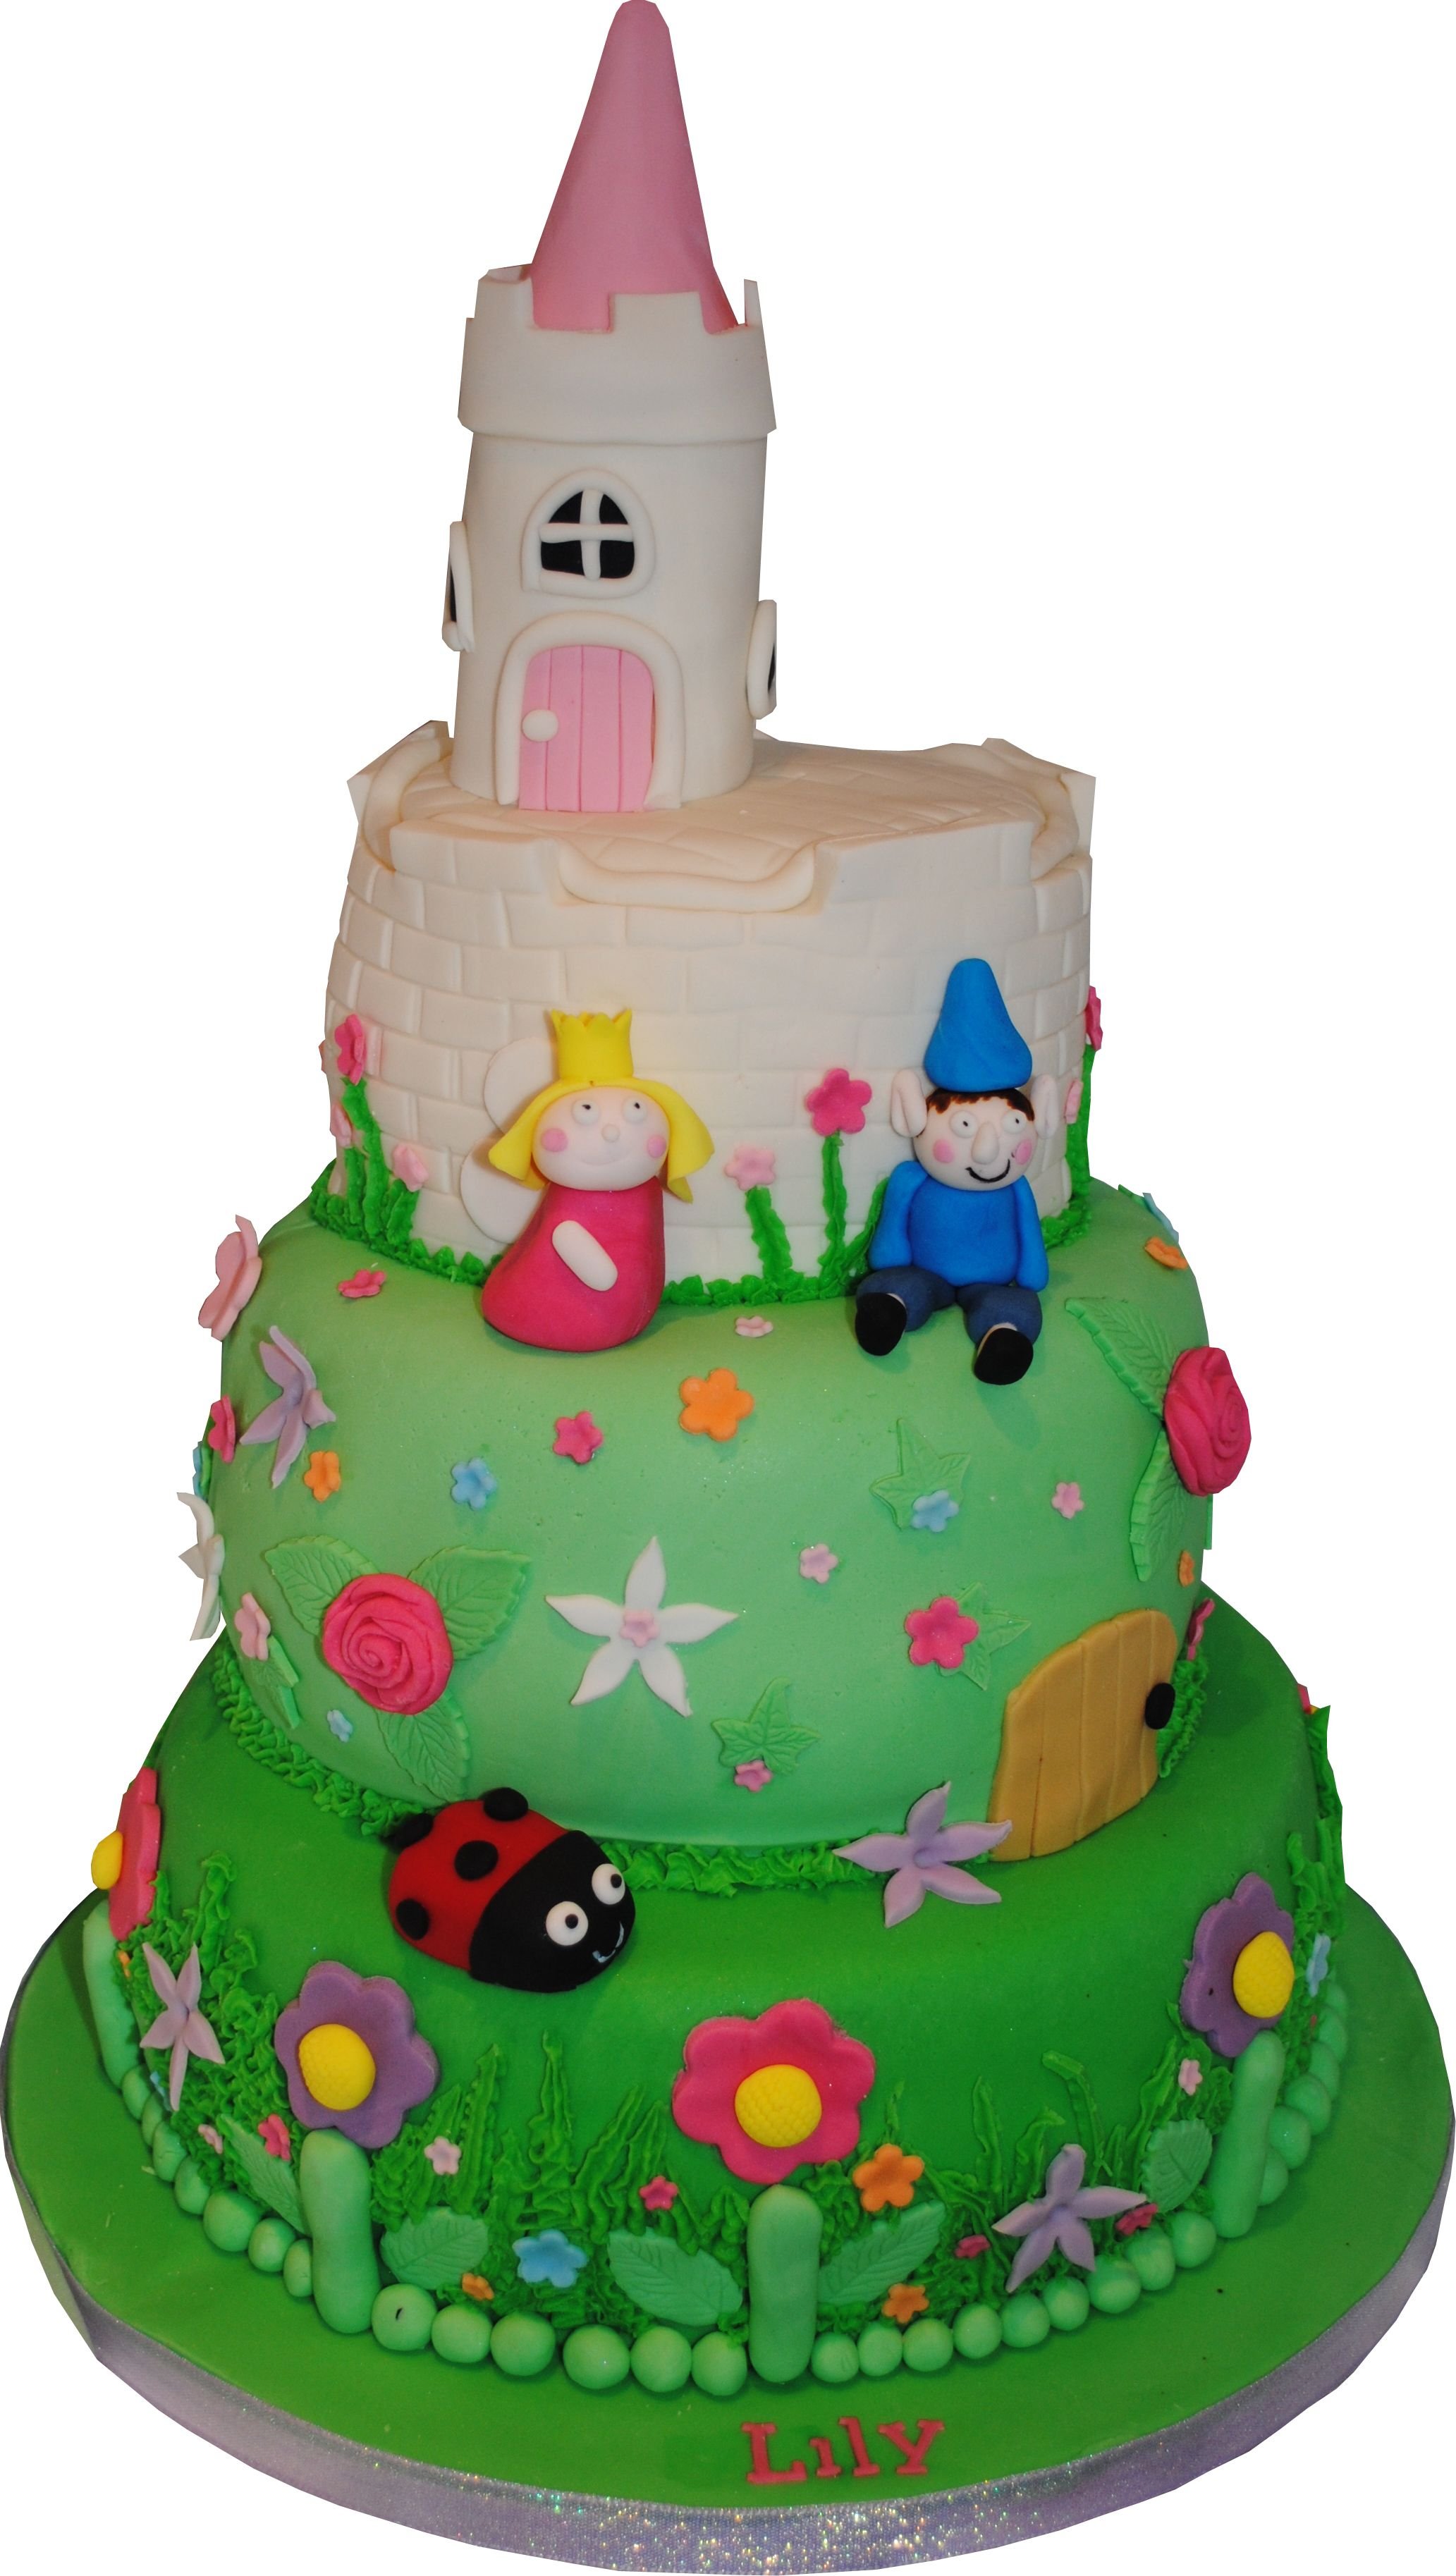 Ben And Holly Cake Starry Cakes Northampton Starry Design